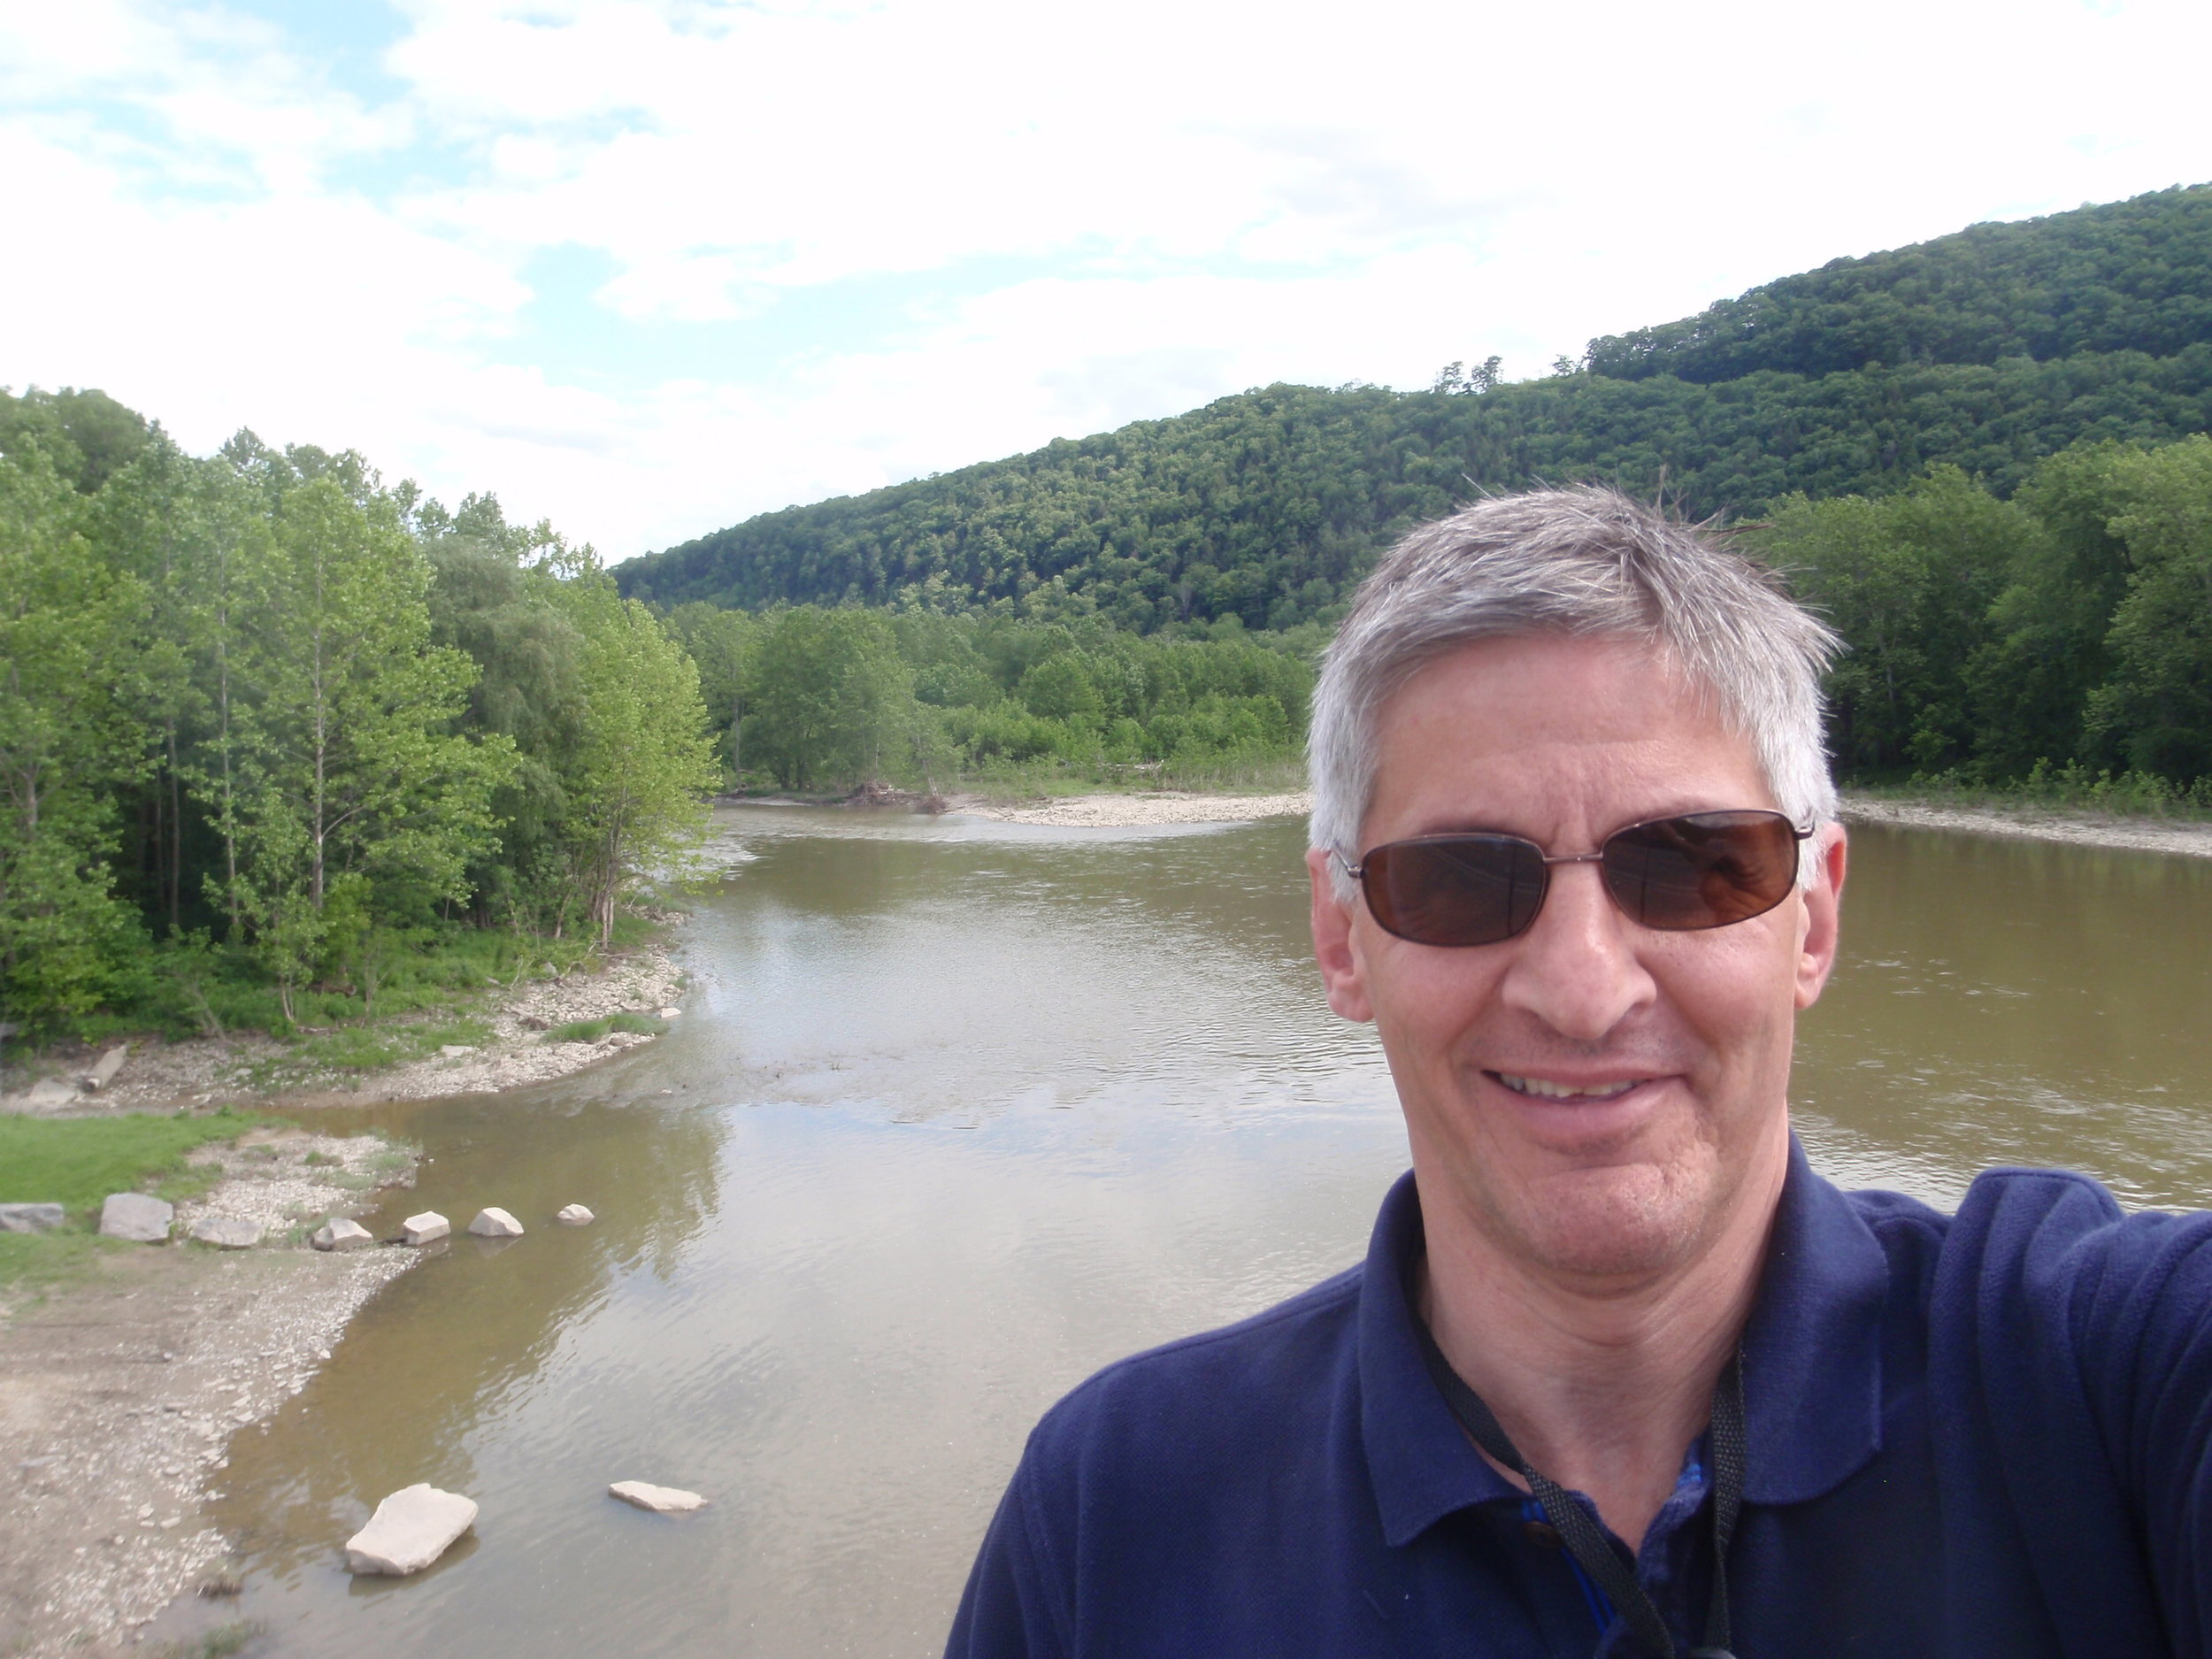 Jim at Fitch's Bridge, Big Flats, looking upriver (east) on the Chemung River